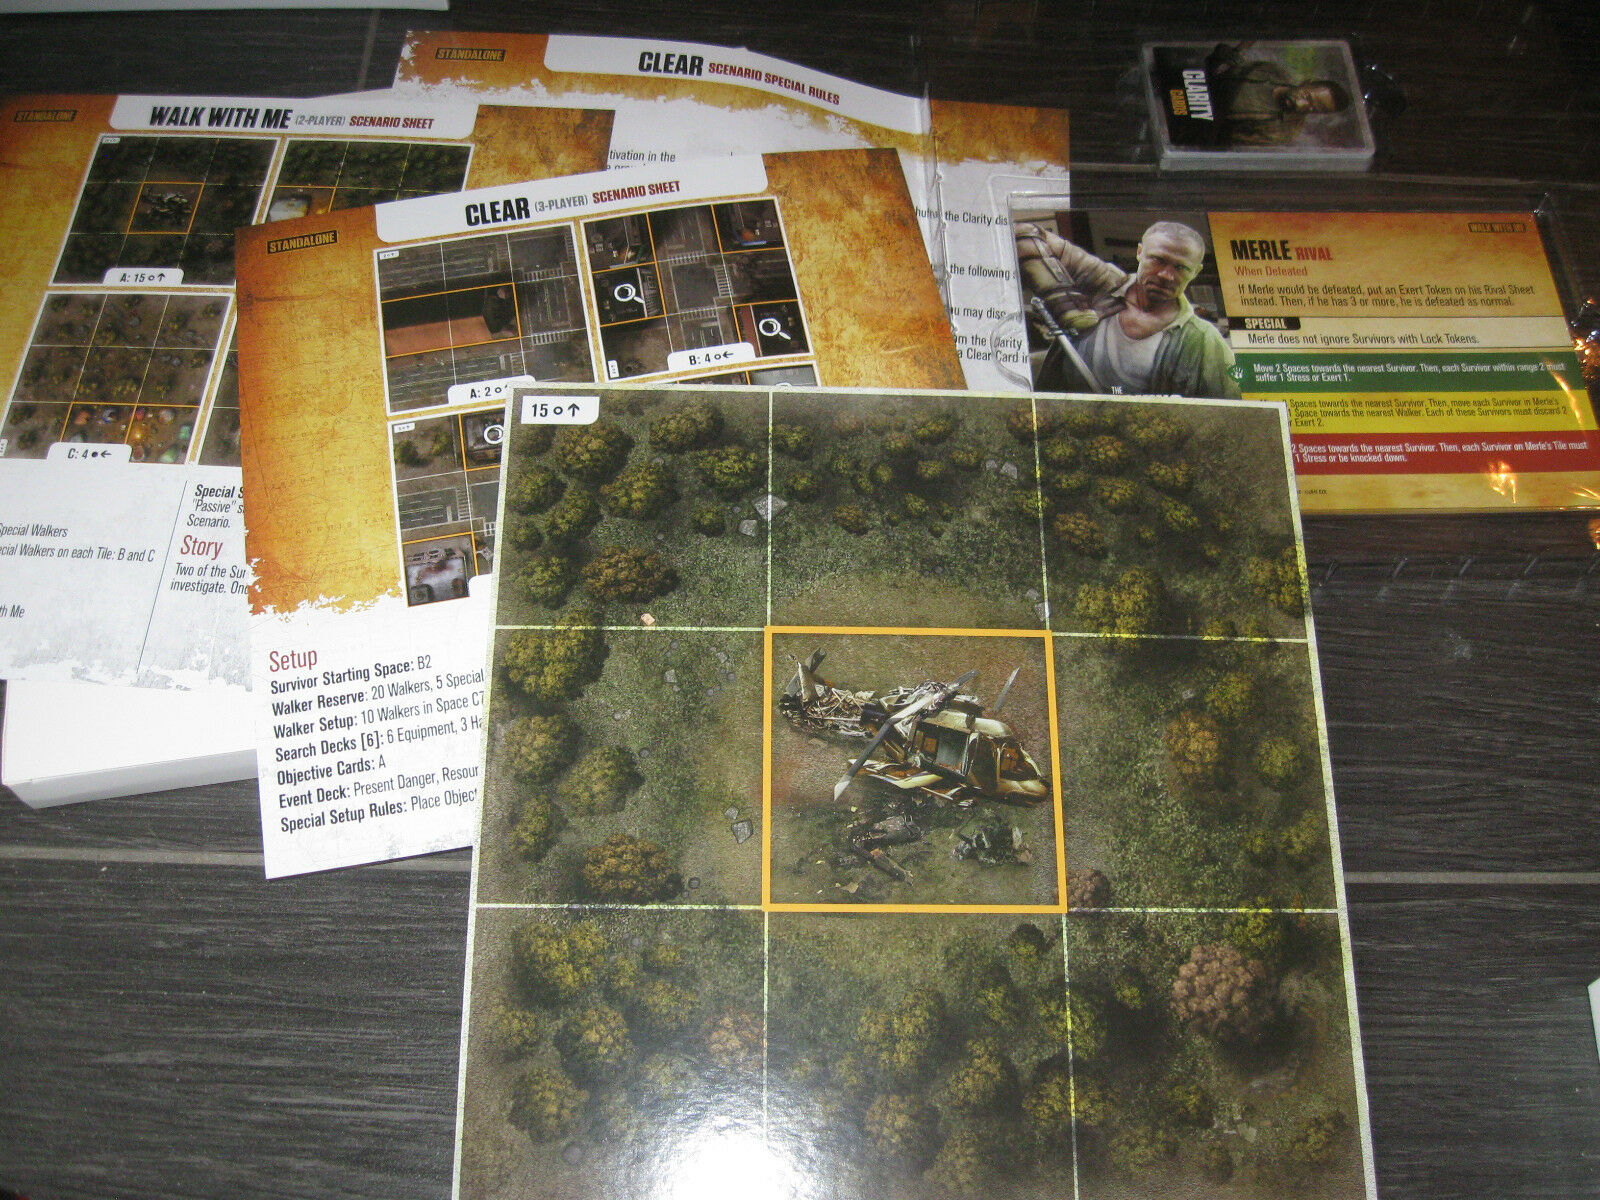 NEW The WALKING DEAD No Sanctuary Walk Me Clear Expansion Kickstarter Exclusive